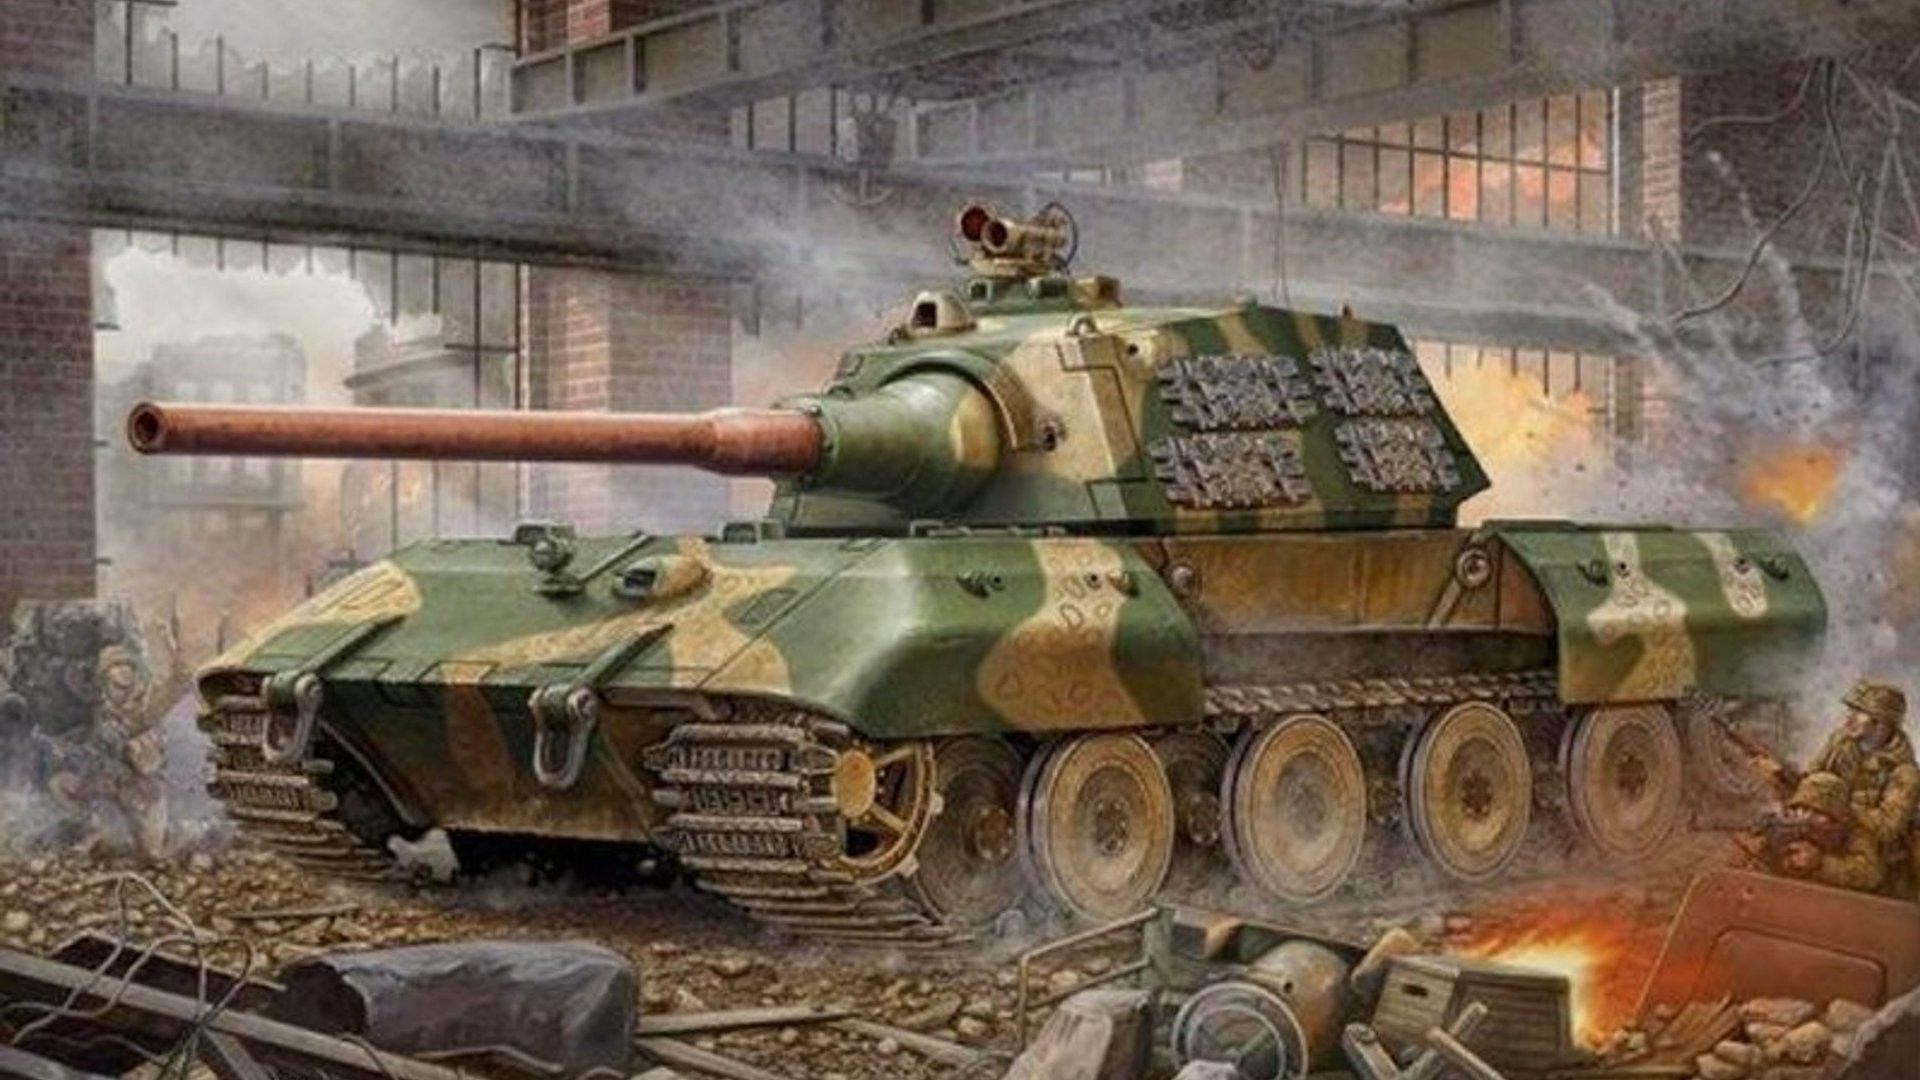 Panzerkampfwagen e 100 wallpaper free wide hd wallpaper art of nearing the end of wwii germany maintained the belief that super tanks could reverse the wars outcome and help them emerge victorious altavistaventures Image collections